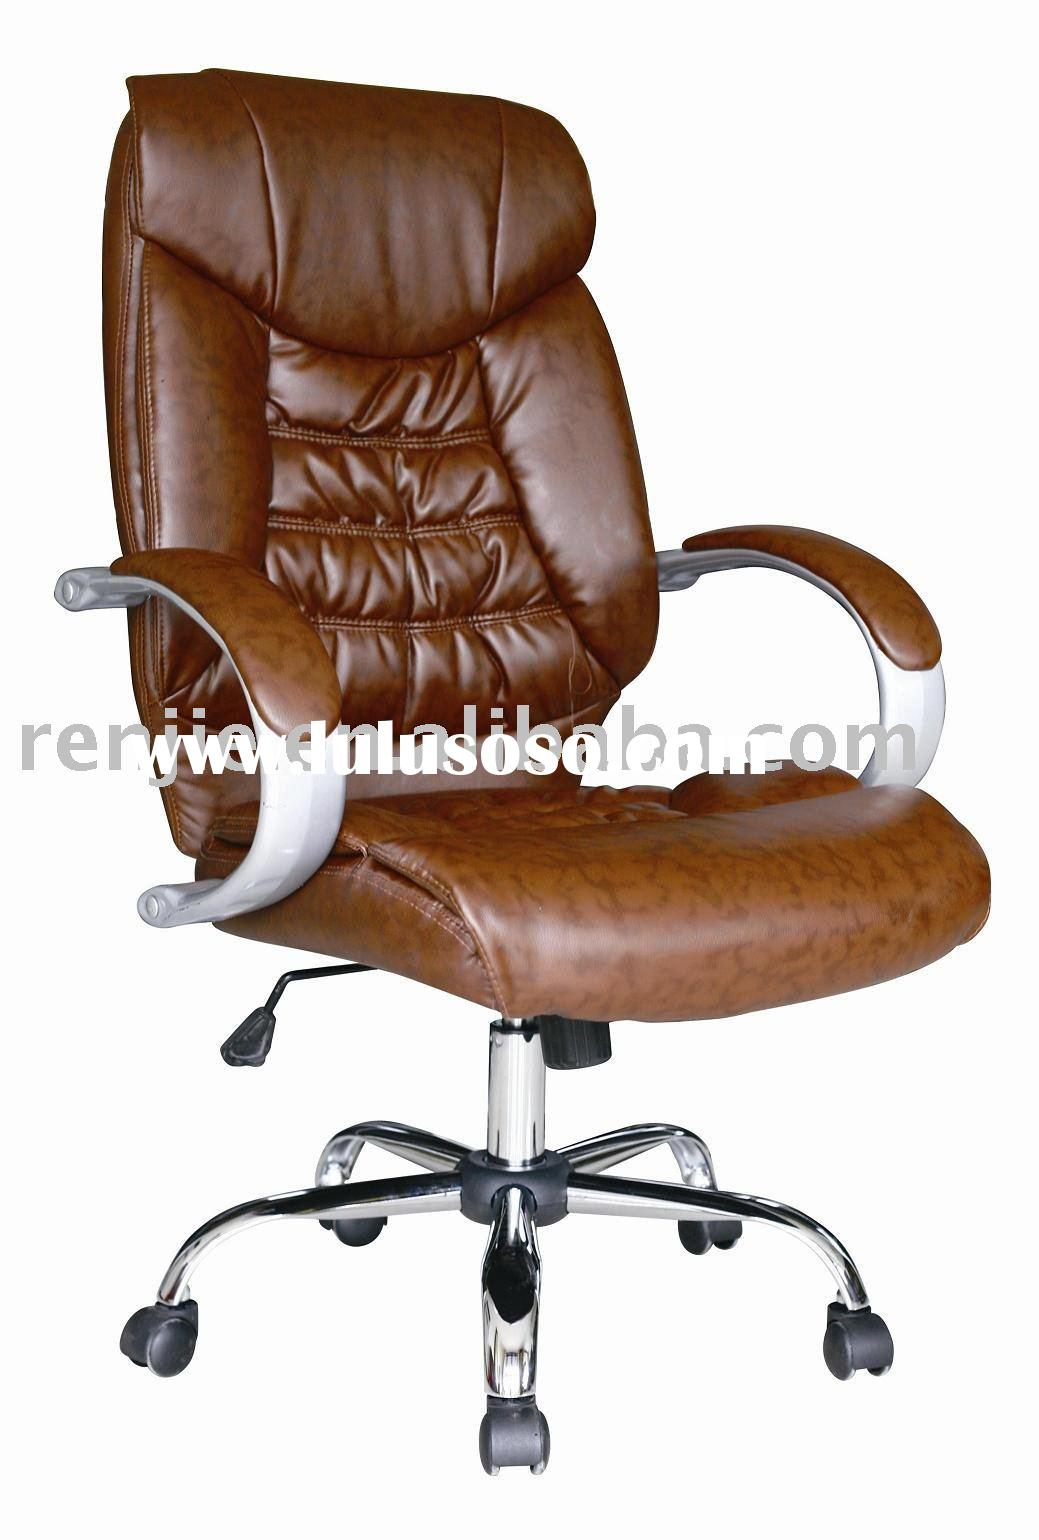 executive chair manufacturers monkey for babies high quality office